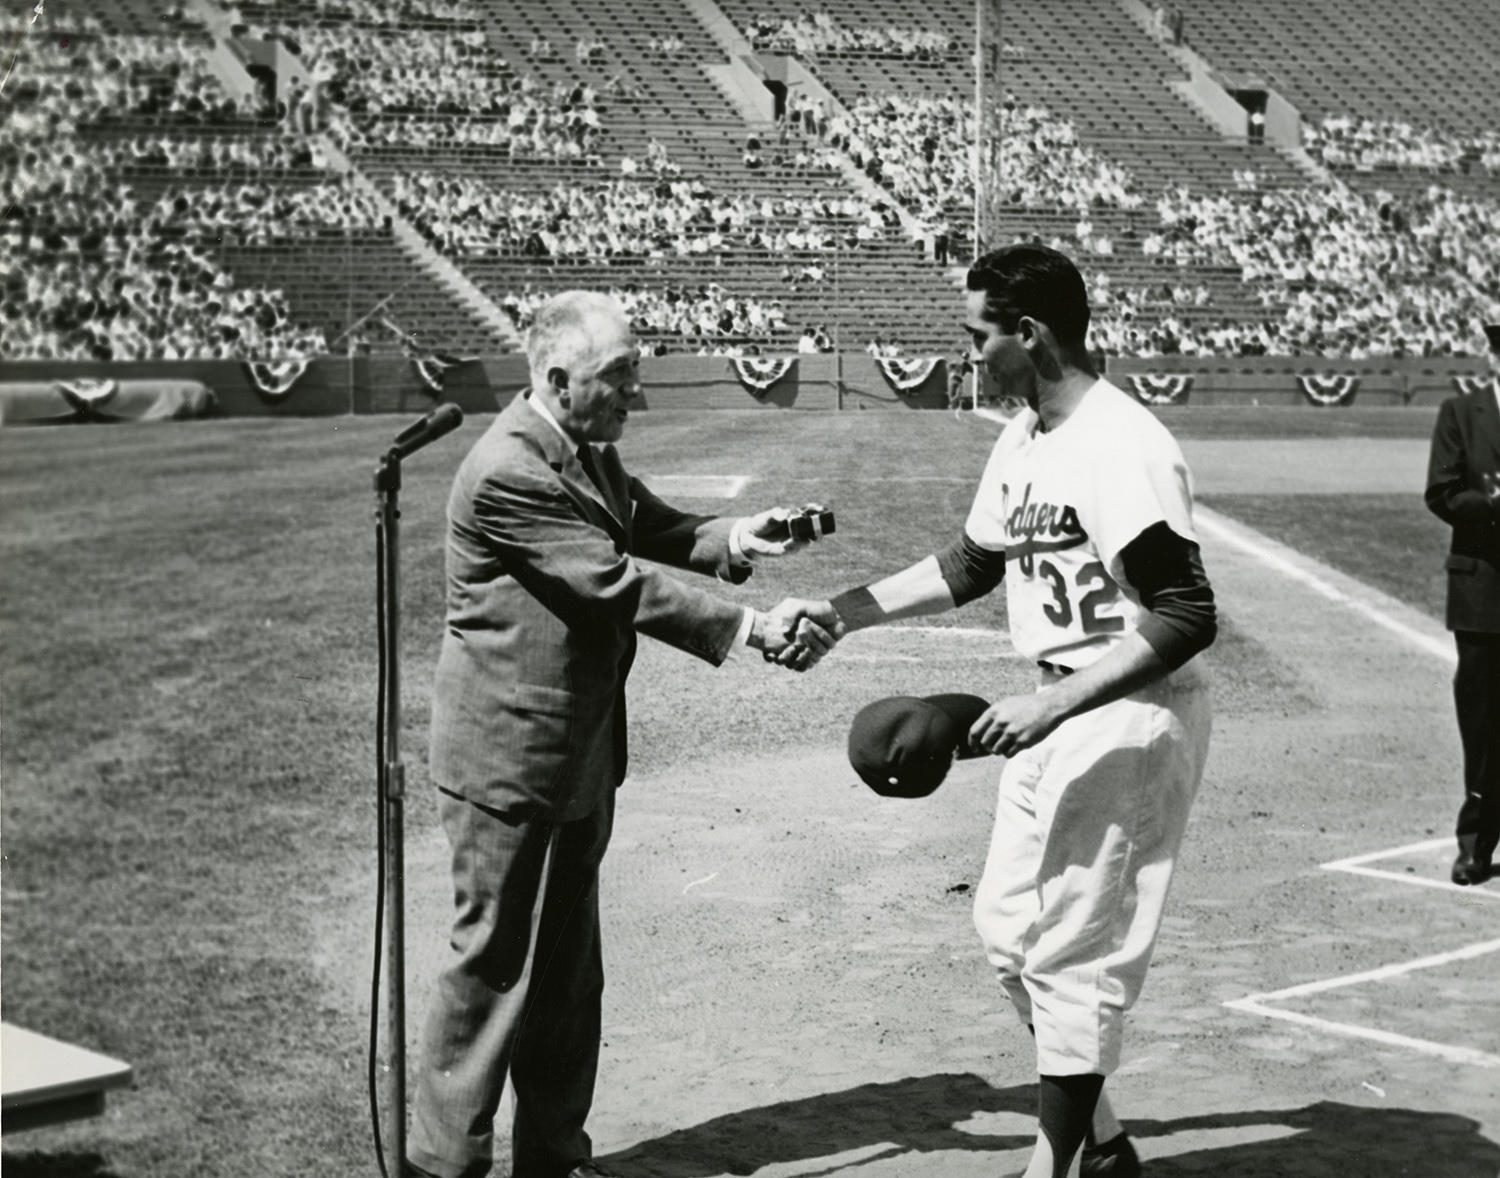 Sandy Koufax accepts his 1959 World Series ring from Commissioner Ford Frick in 1960. (National Baseball Hall of Fame and Museum)